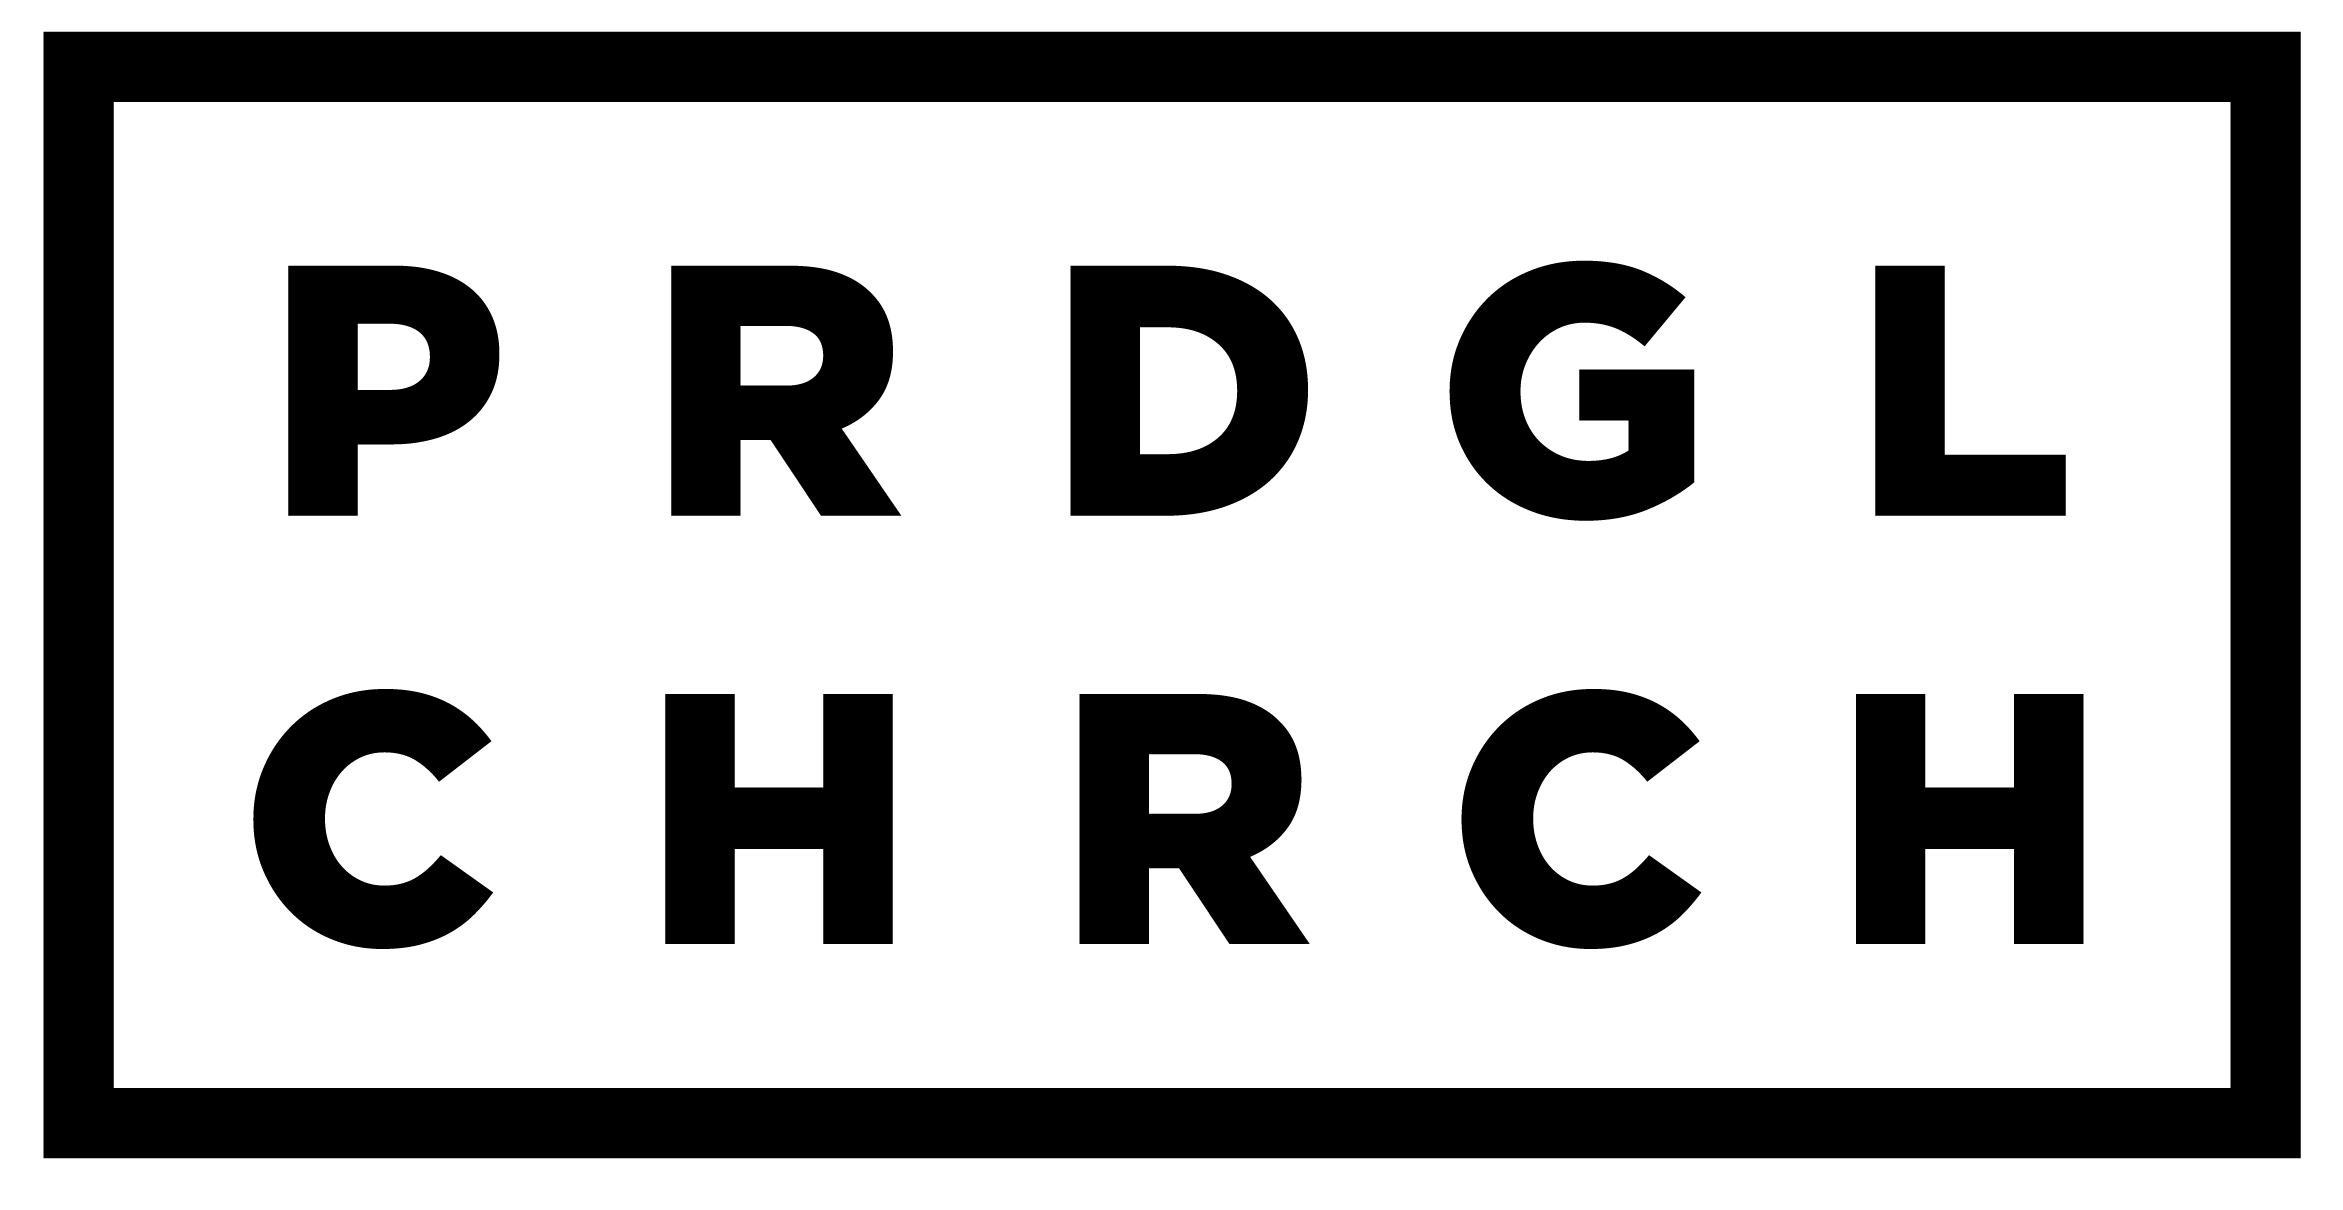 prdgl-chrch-black-1.png